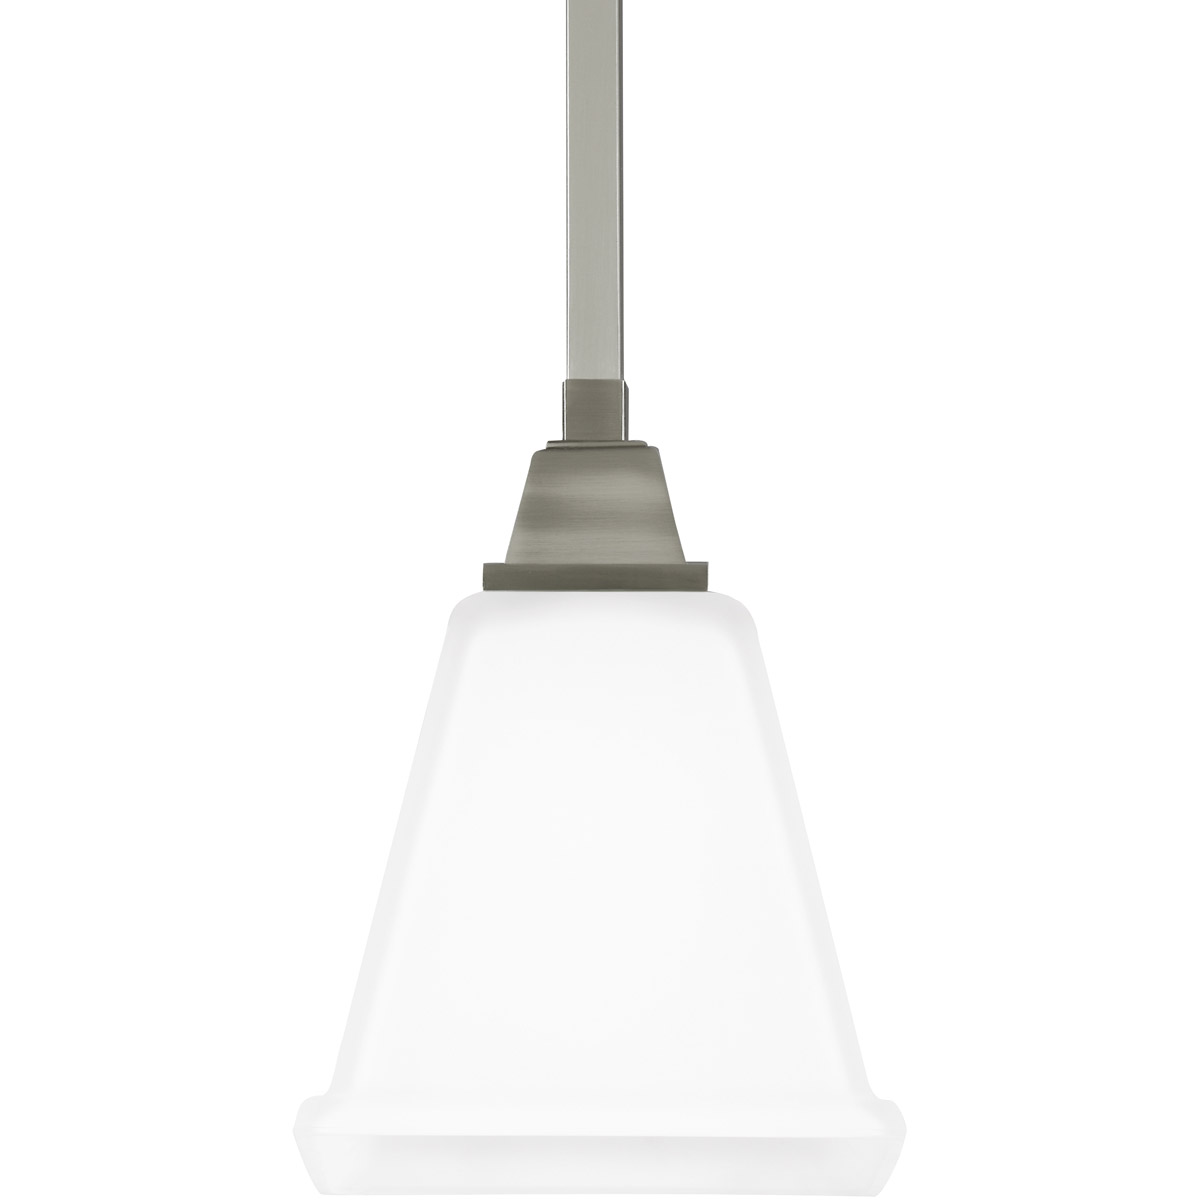 Sea Gull Denhelm 1 Light Mini Pendant in Brushed Nickel 6150401-962